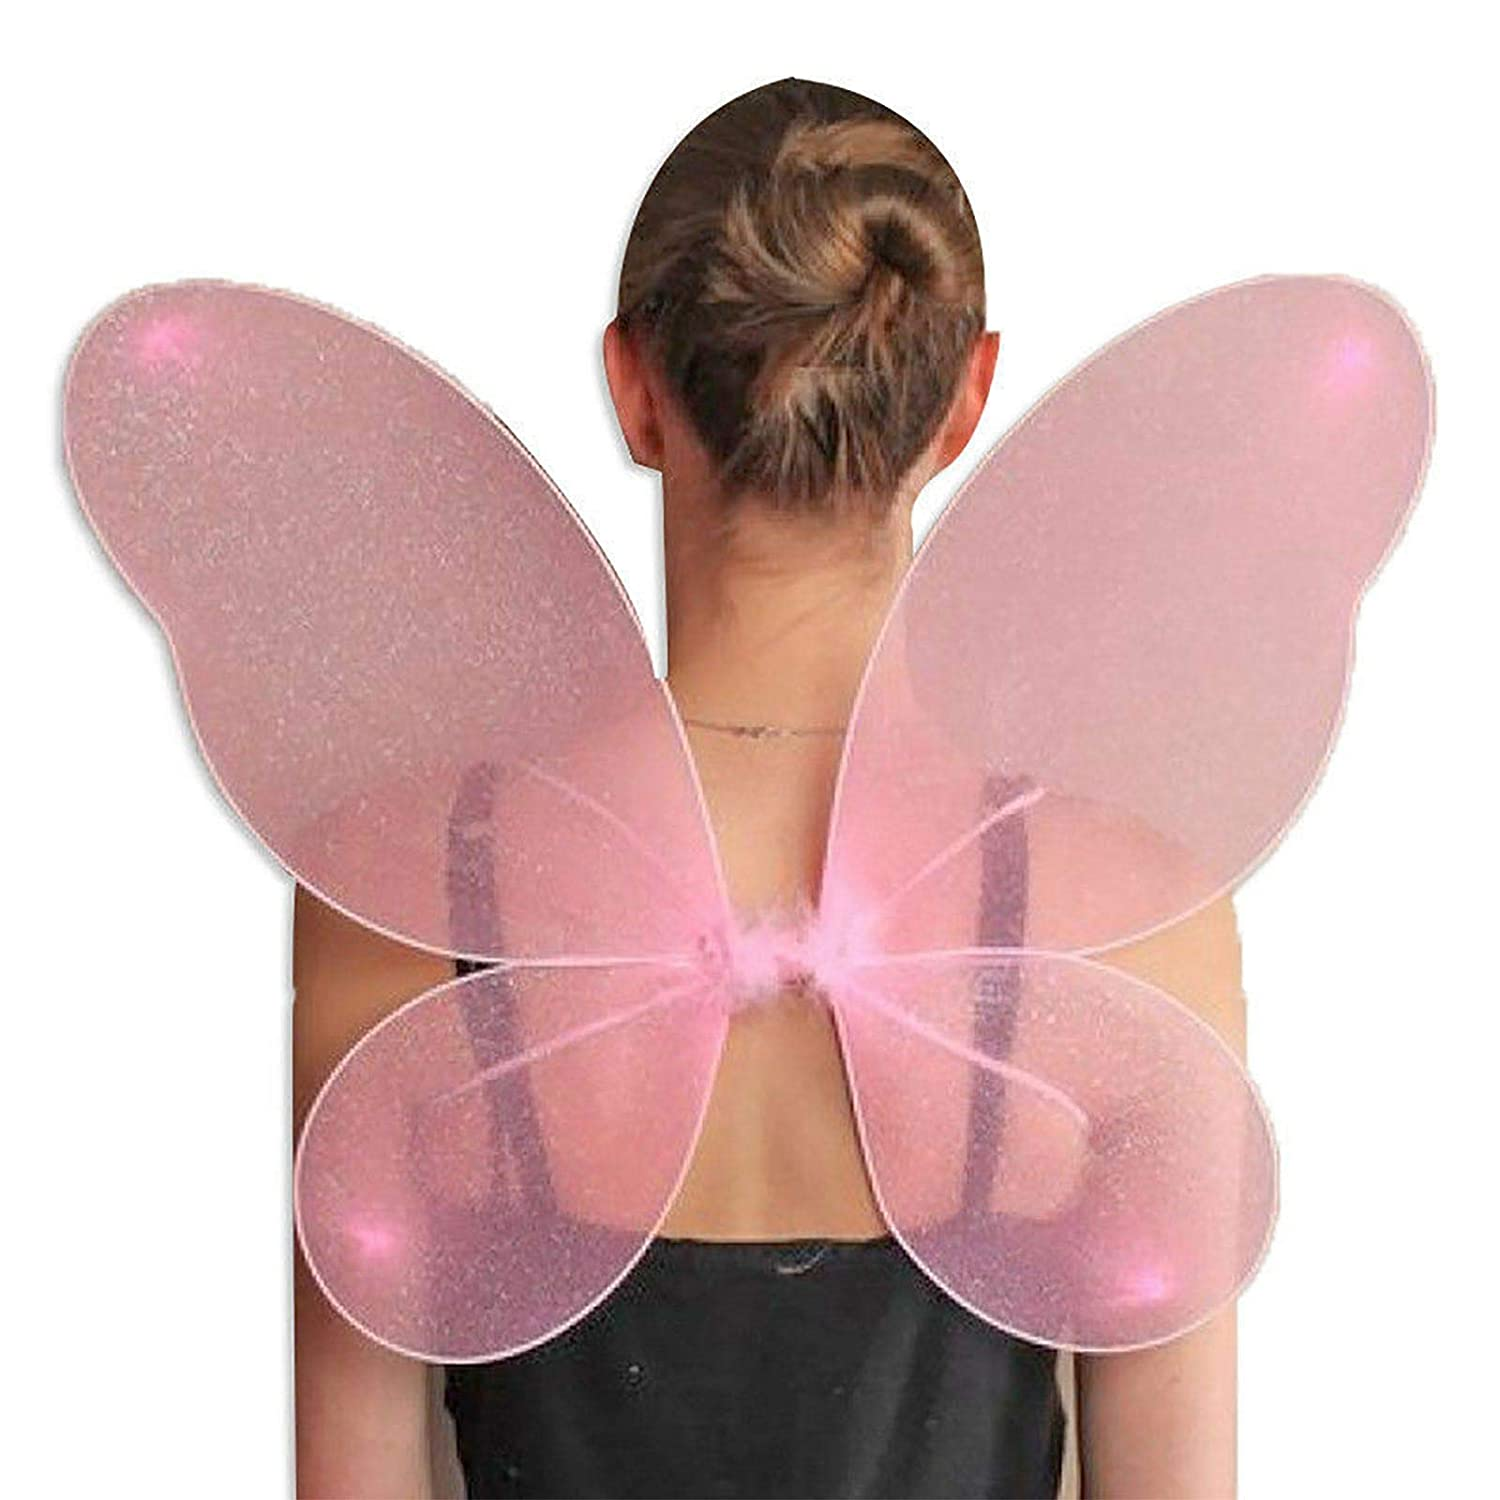 LARGE ADULT NET FAIRY WINGS WITH SILVER GLITTER FANCY DRESS UP PINK WHITE BLACK